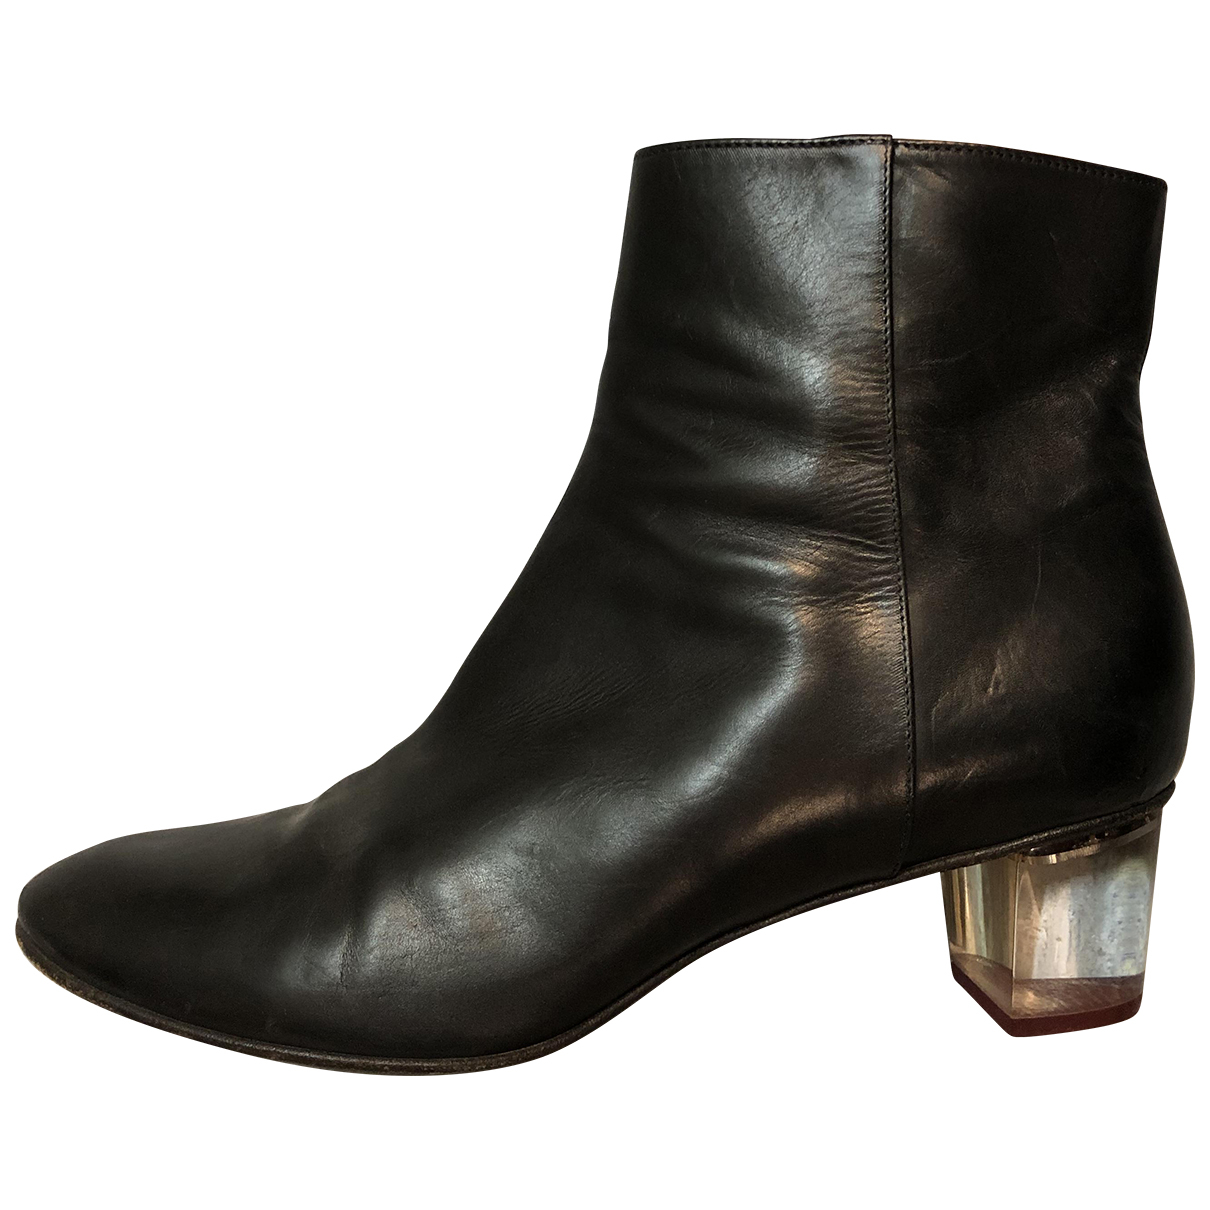 Dries Van Noten \N Black Leather Ankle boots for Women 40 EU